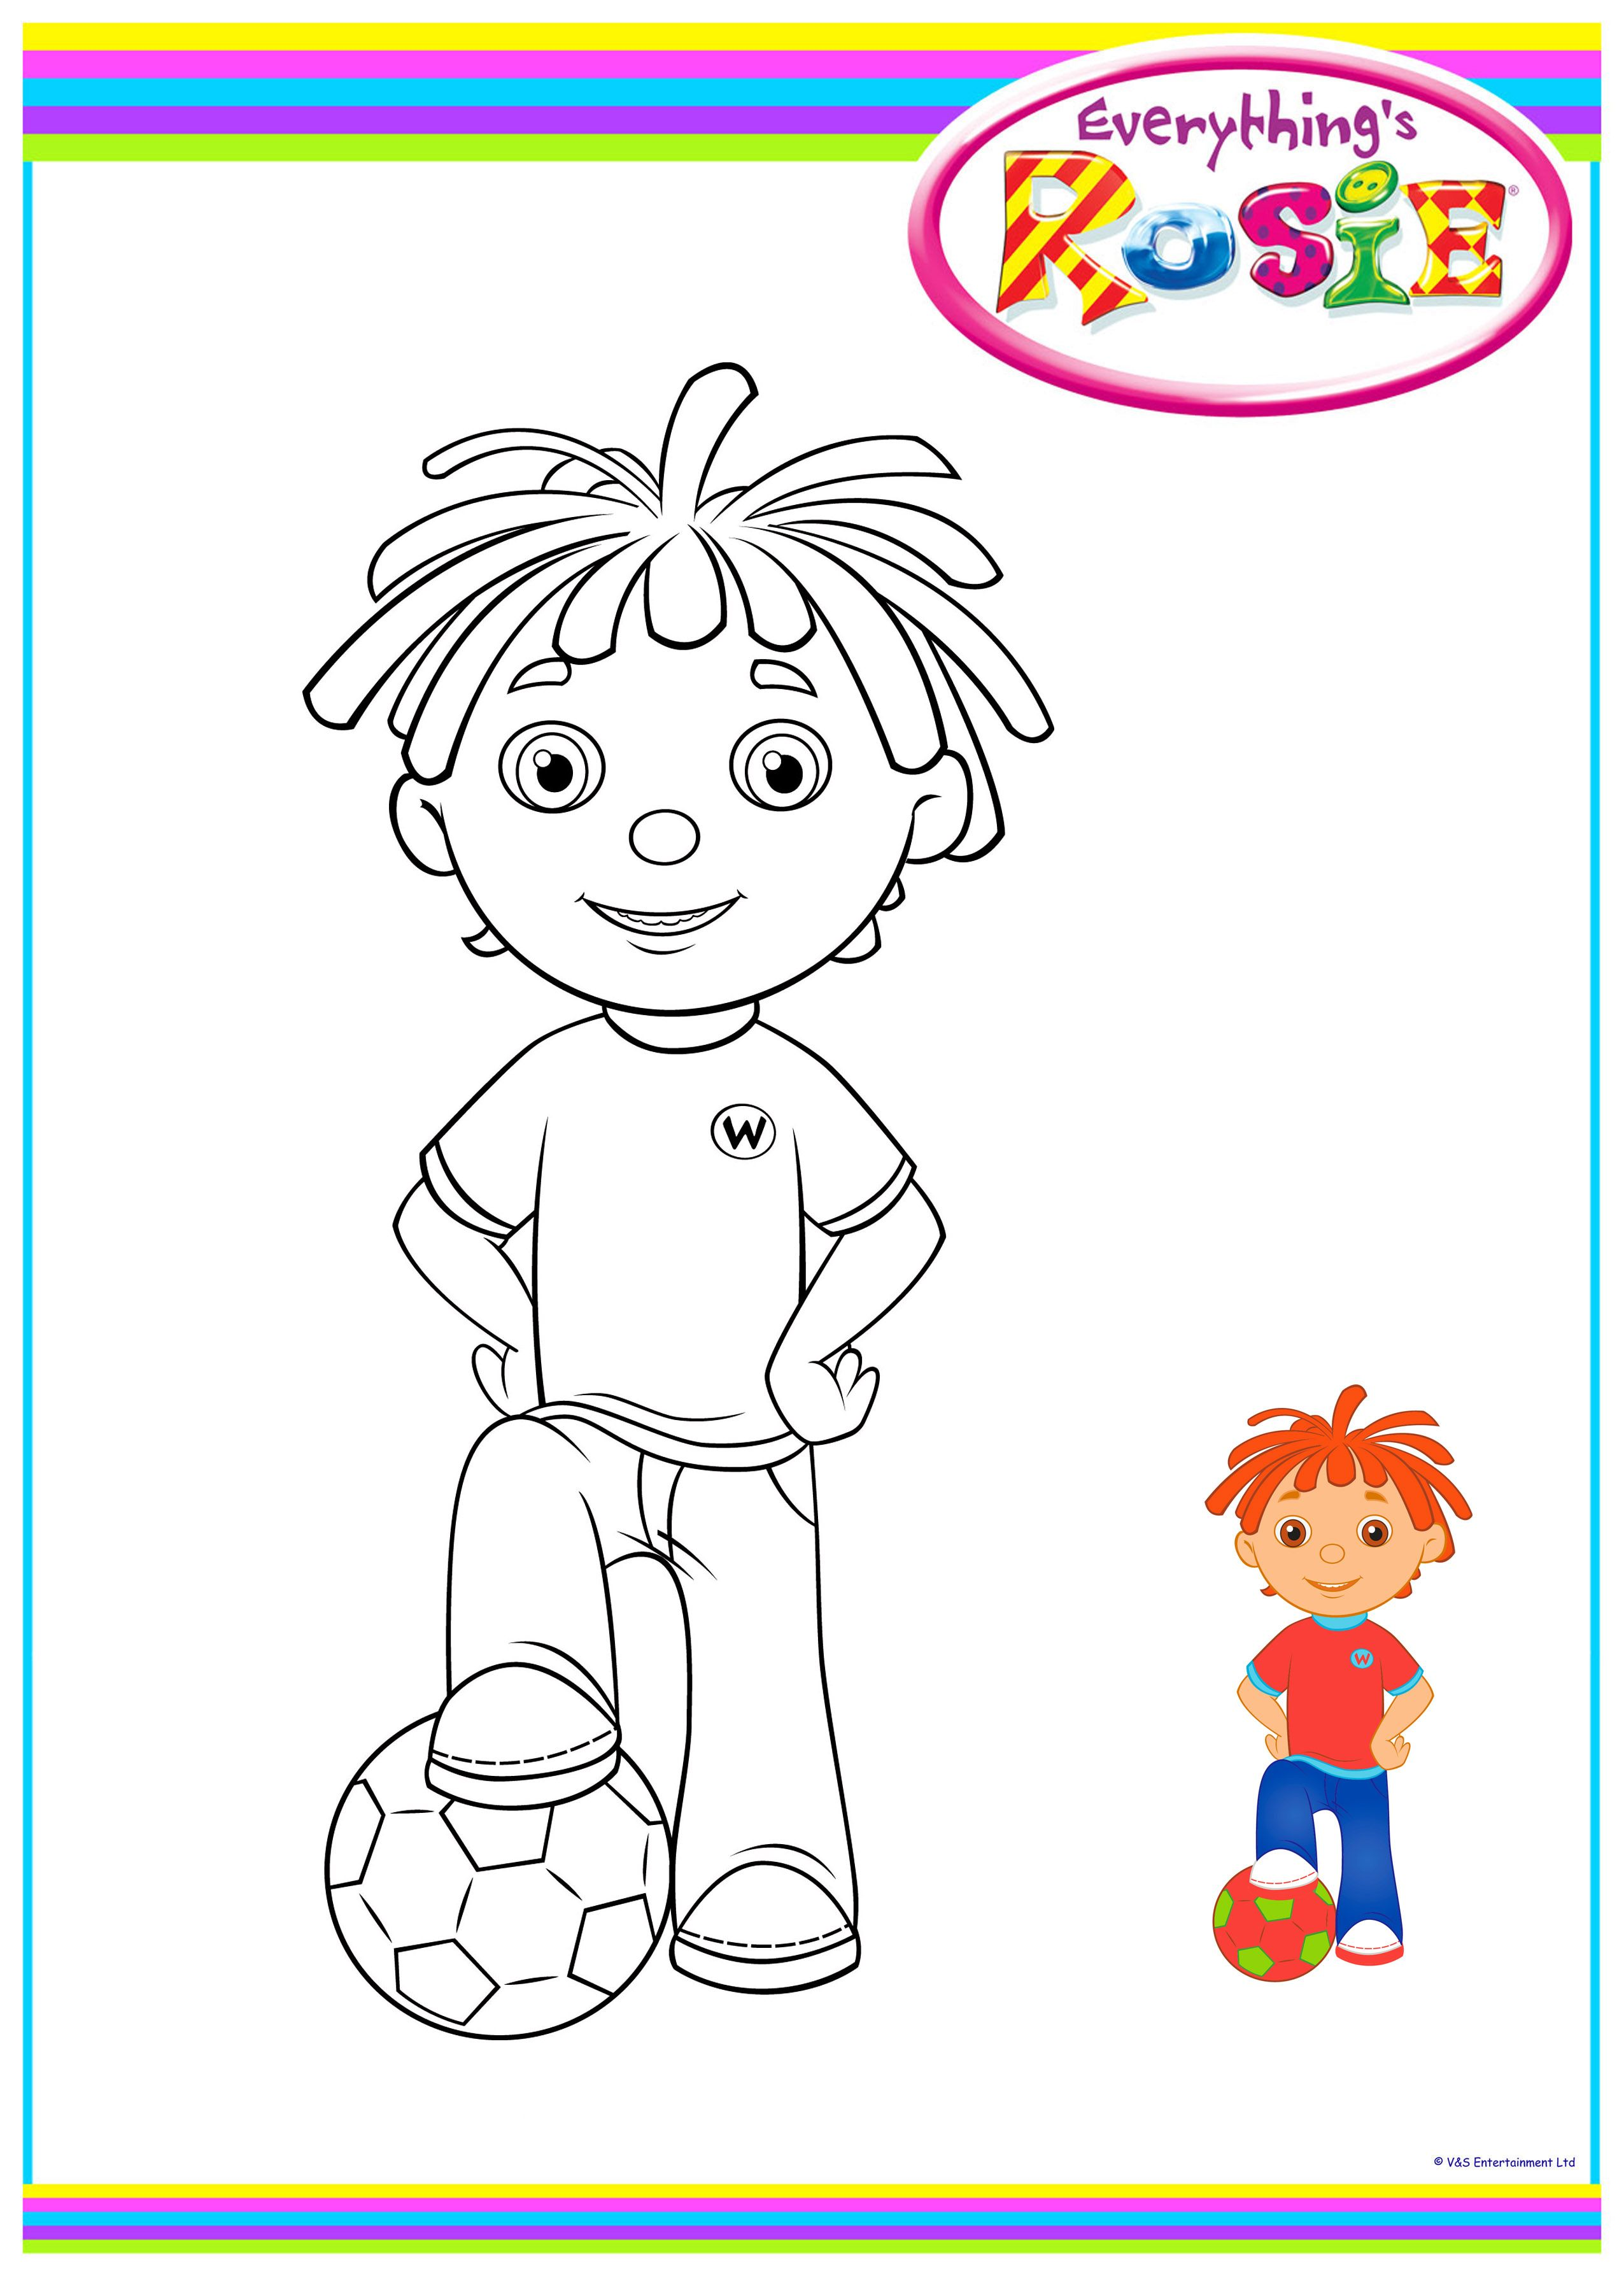 Rosie train coloring - Everything S Rosie Colouring Sheets 7